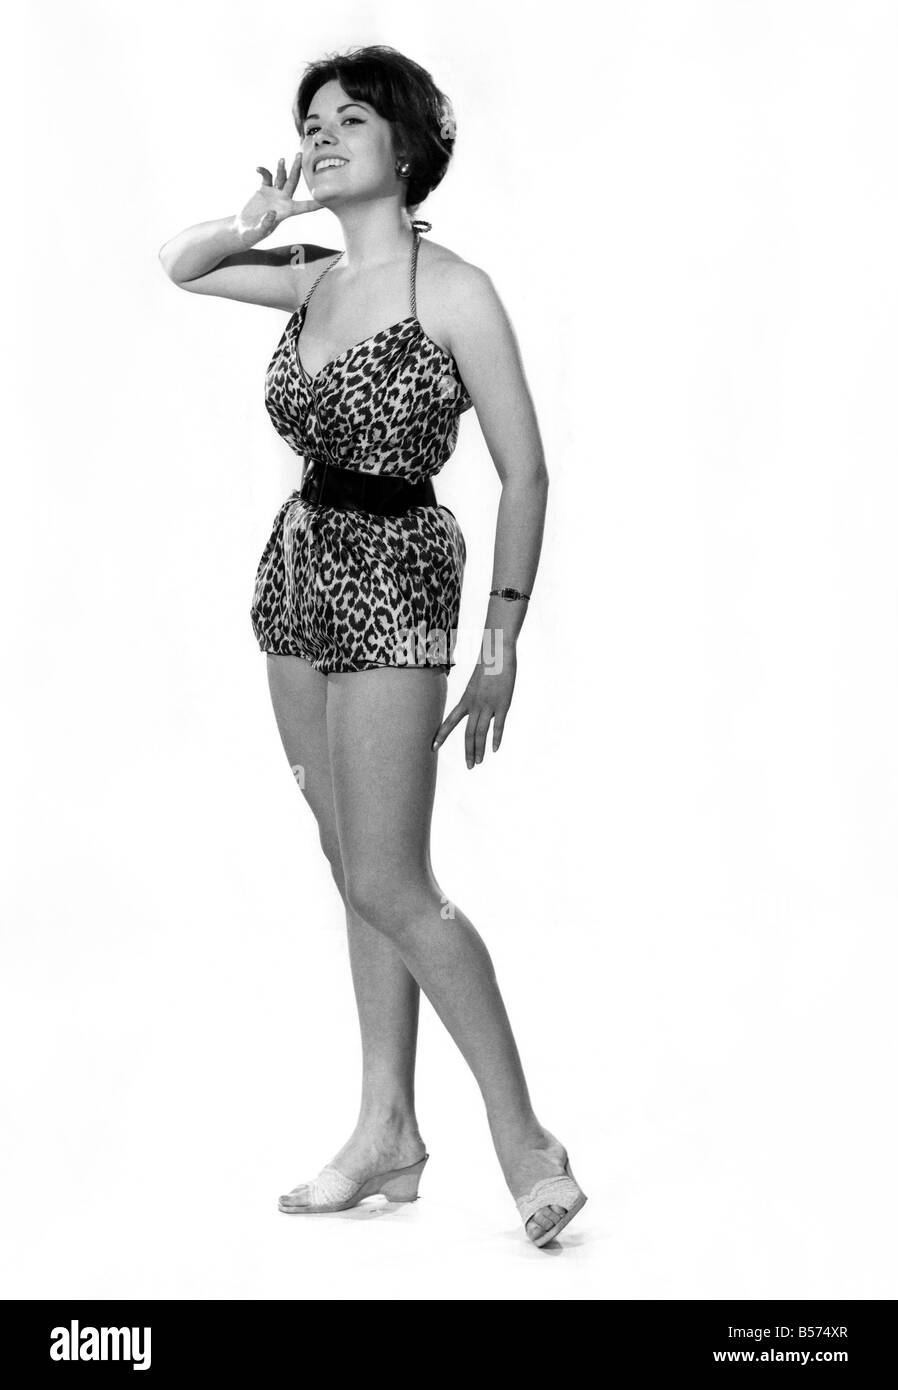 Reveille Fashions Wendy Richard Modelling Animal Print Swimming